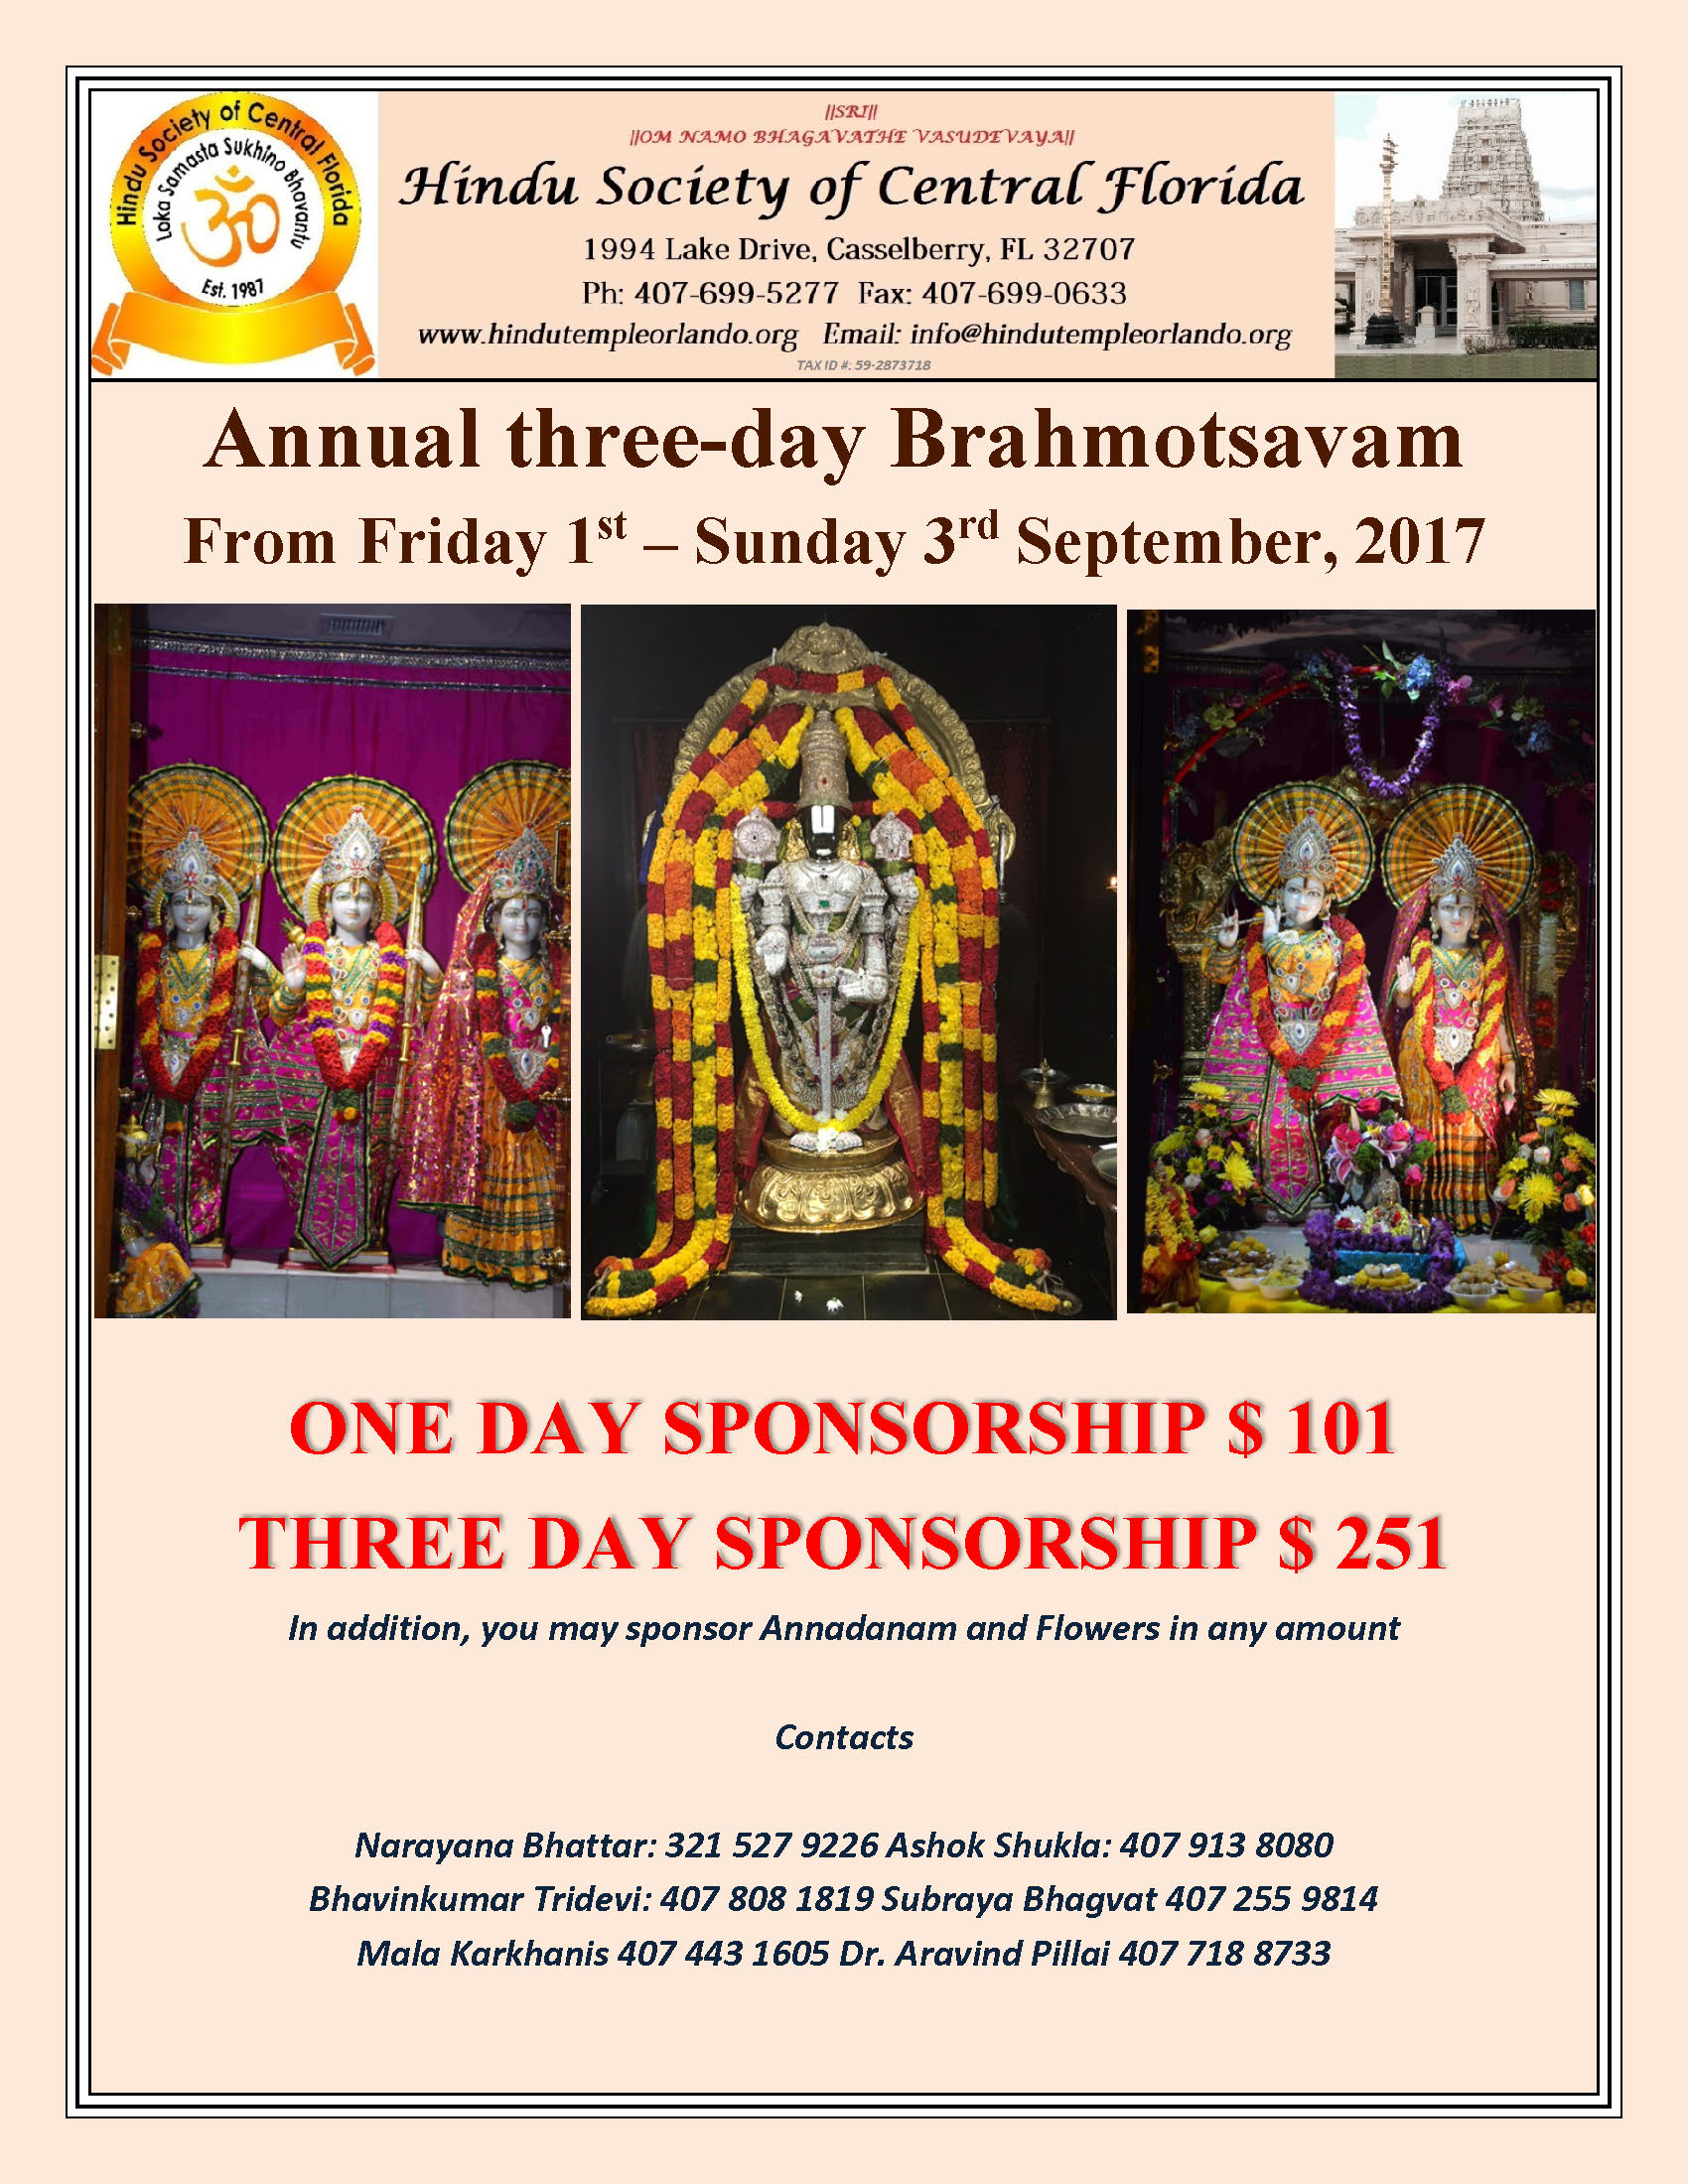 Annual Three-day Brahmotsavam